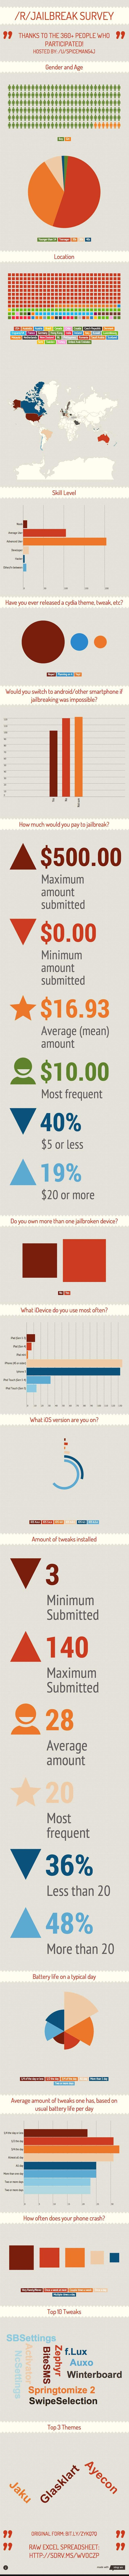 The Average Jailbreaker Depicted In This Infographic